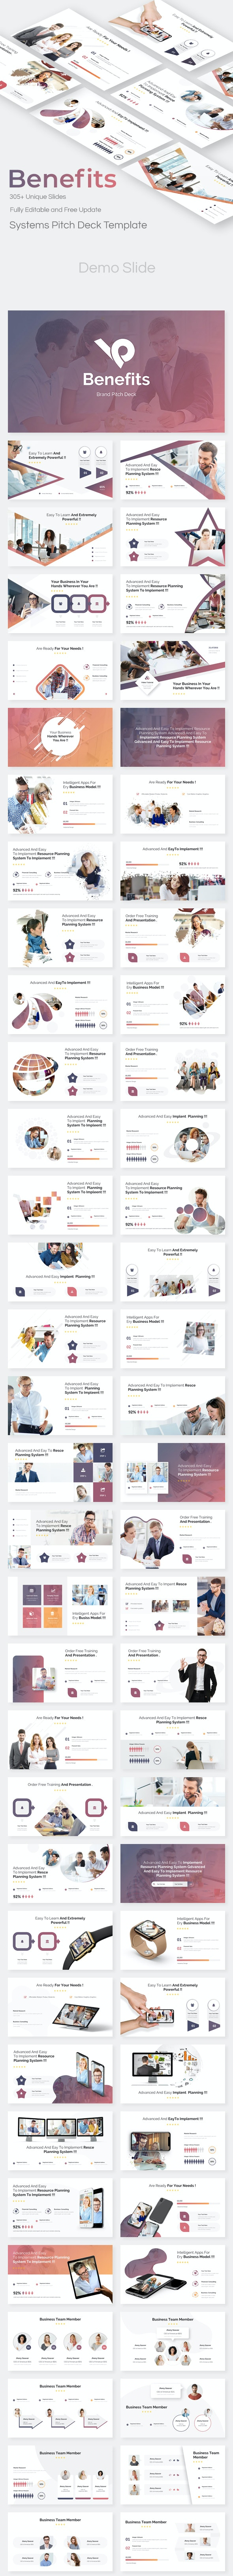 Brand Benefits Pitch Deck Keynote Template - Business Keynote Templates